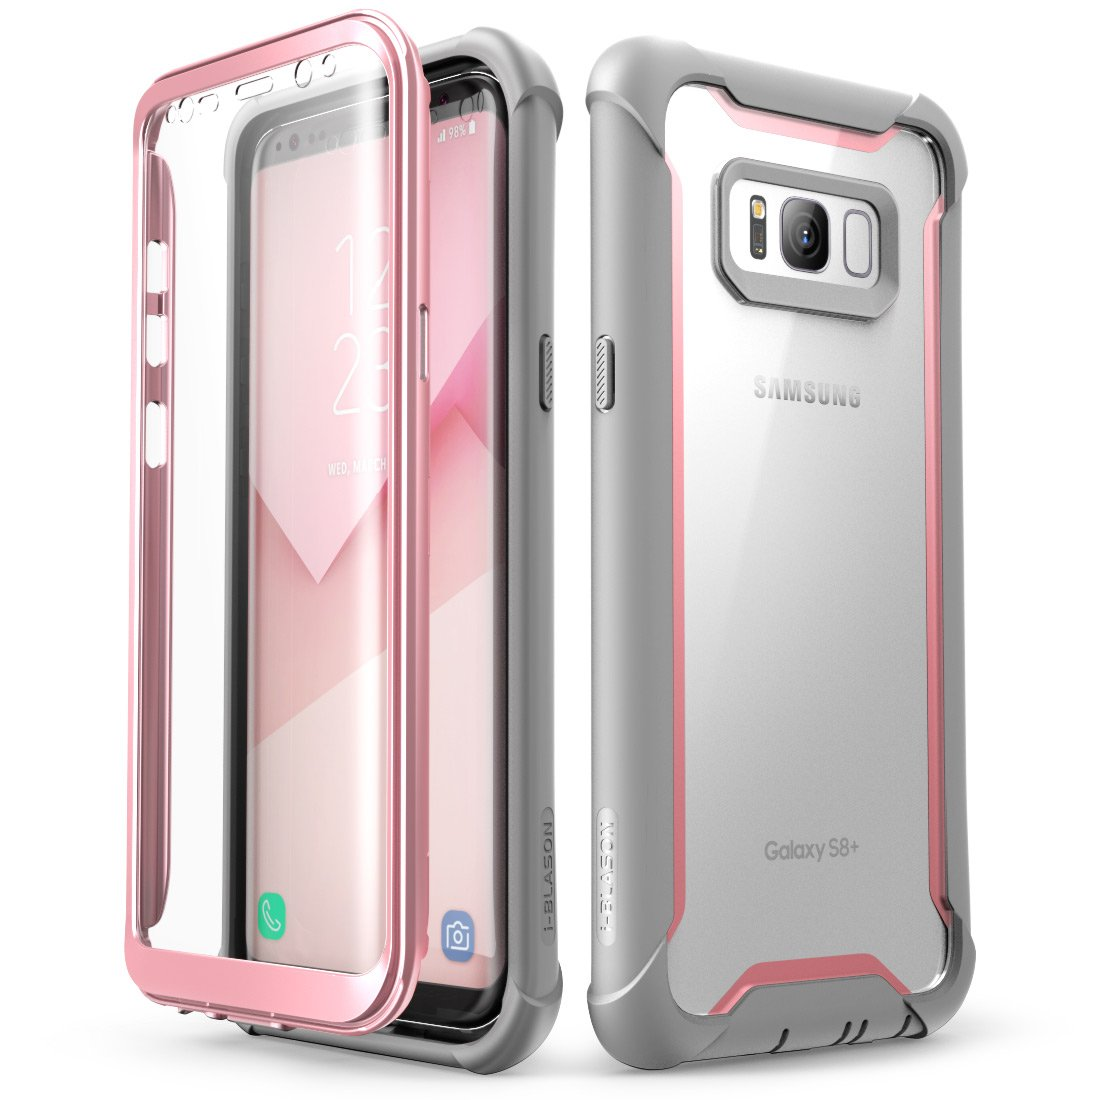 Samsung Galaxy S8+ Plus case, i-Blason [Ares] Full-Body Rugged Clear Bumper Case with Built-in Screen Protector for Samsung Galaxy S8+ Plus 2017 Release (Pink)